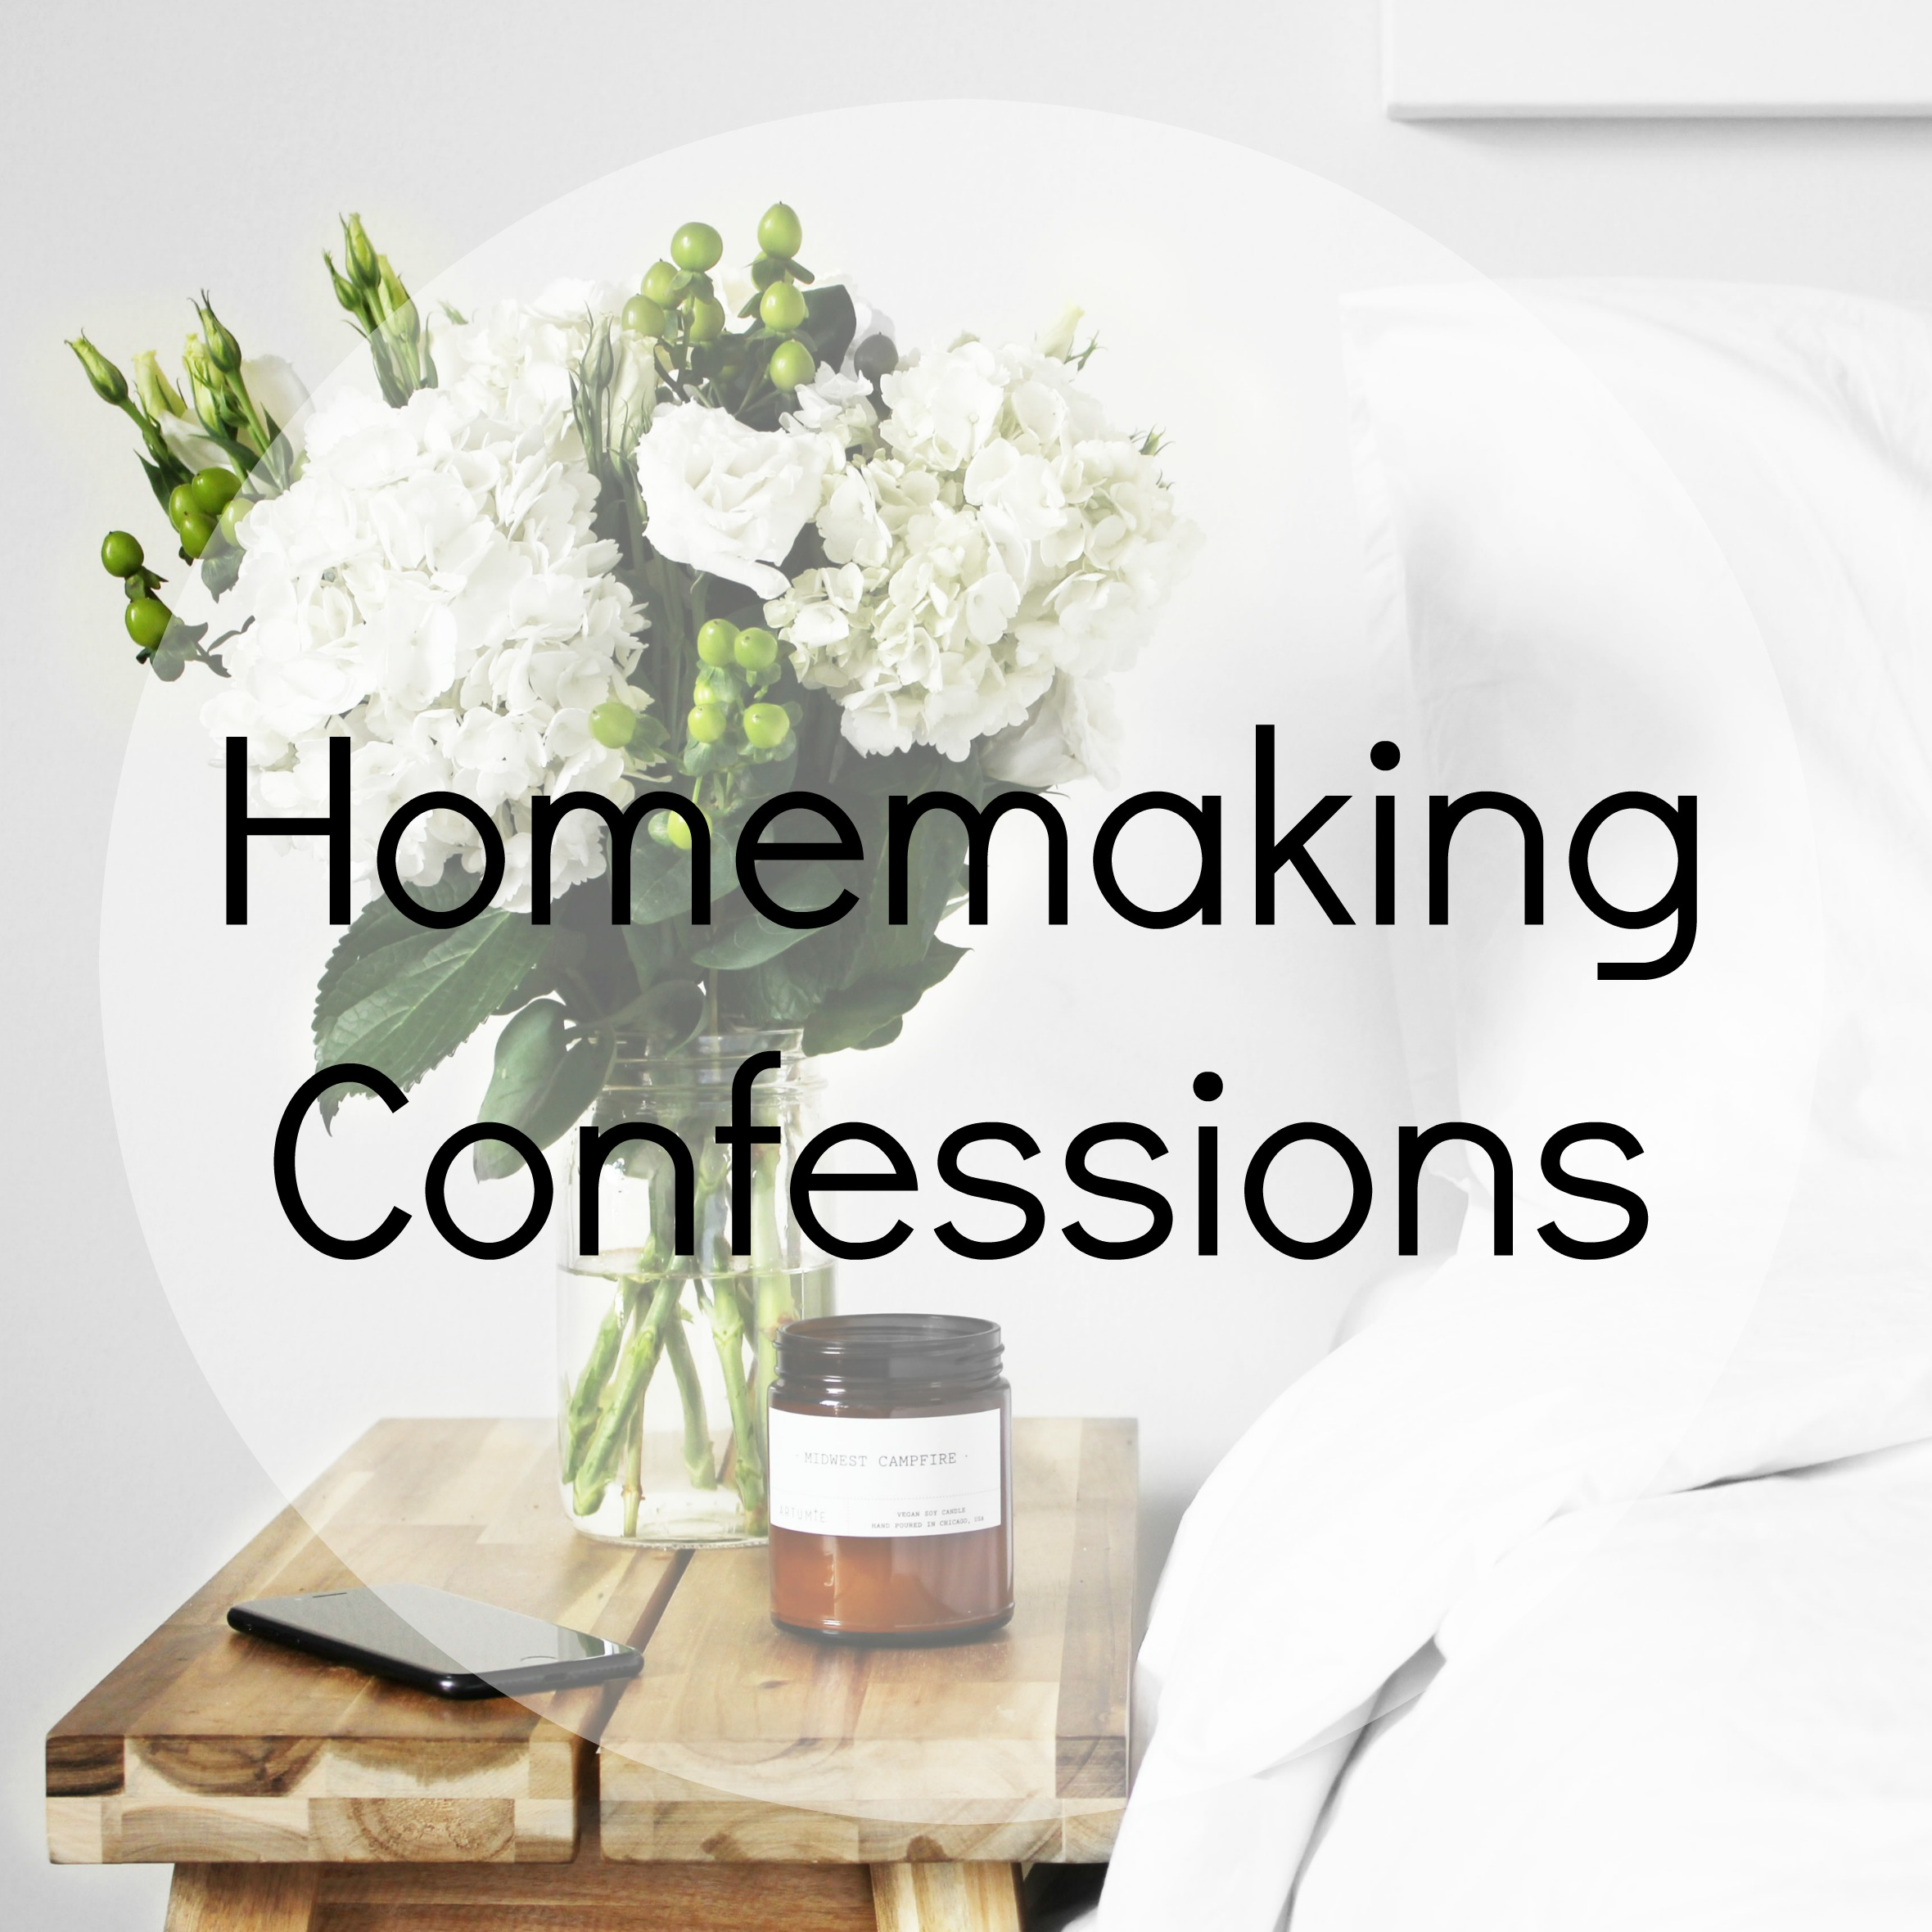 homemaking confessionsions.jpg